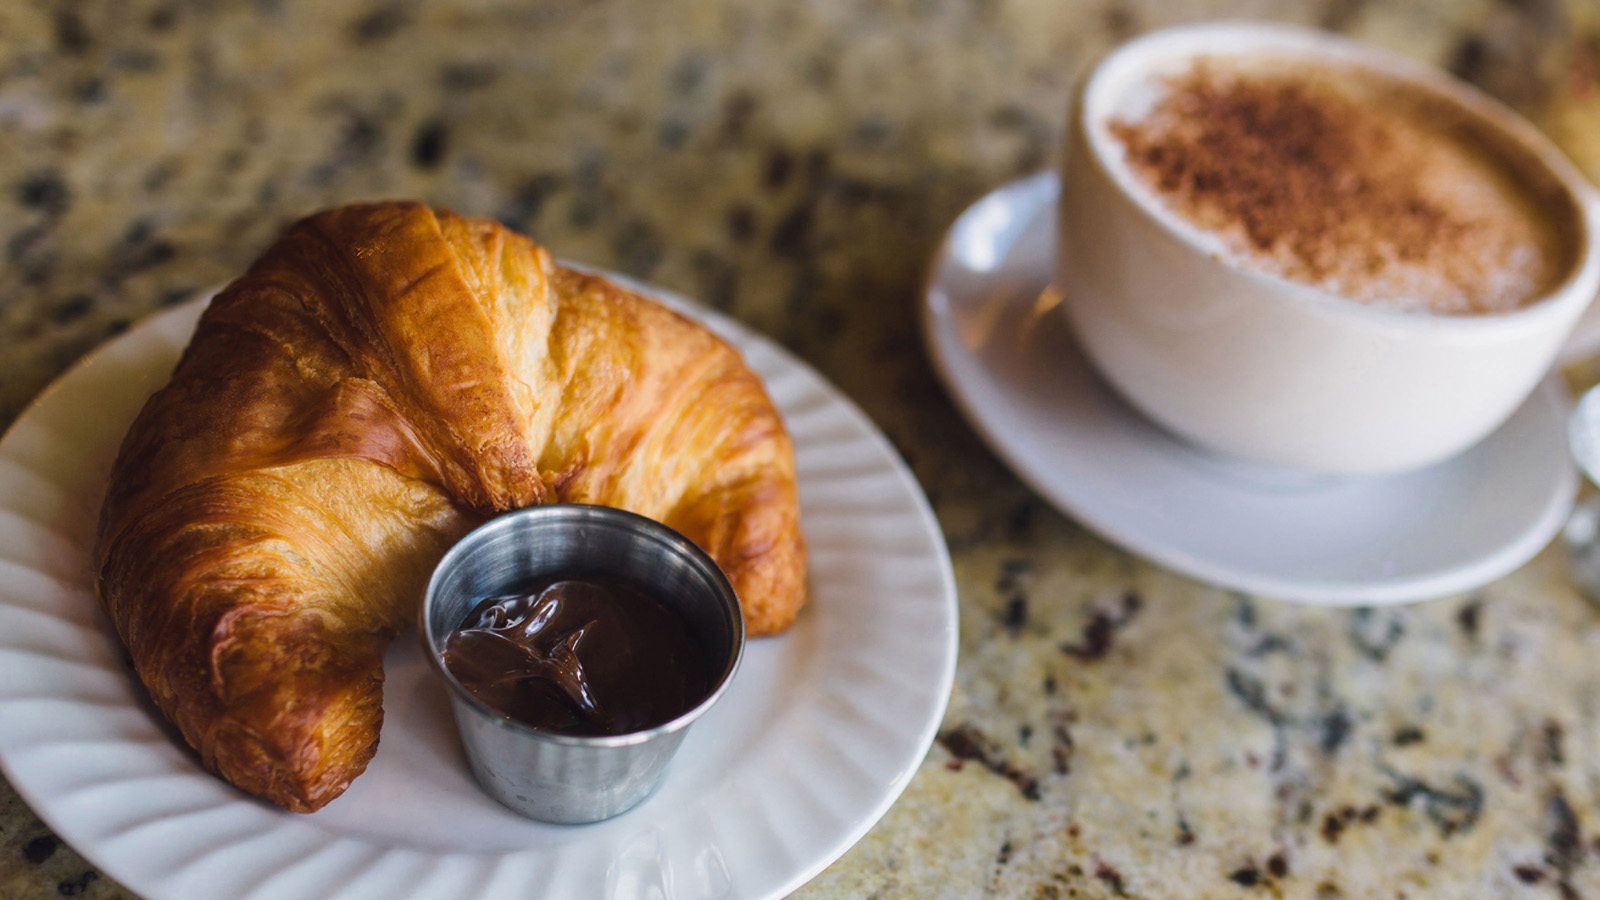 Sweet Croissant and Coffee